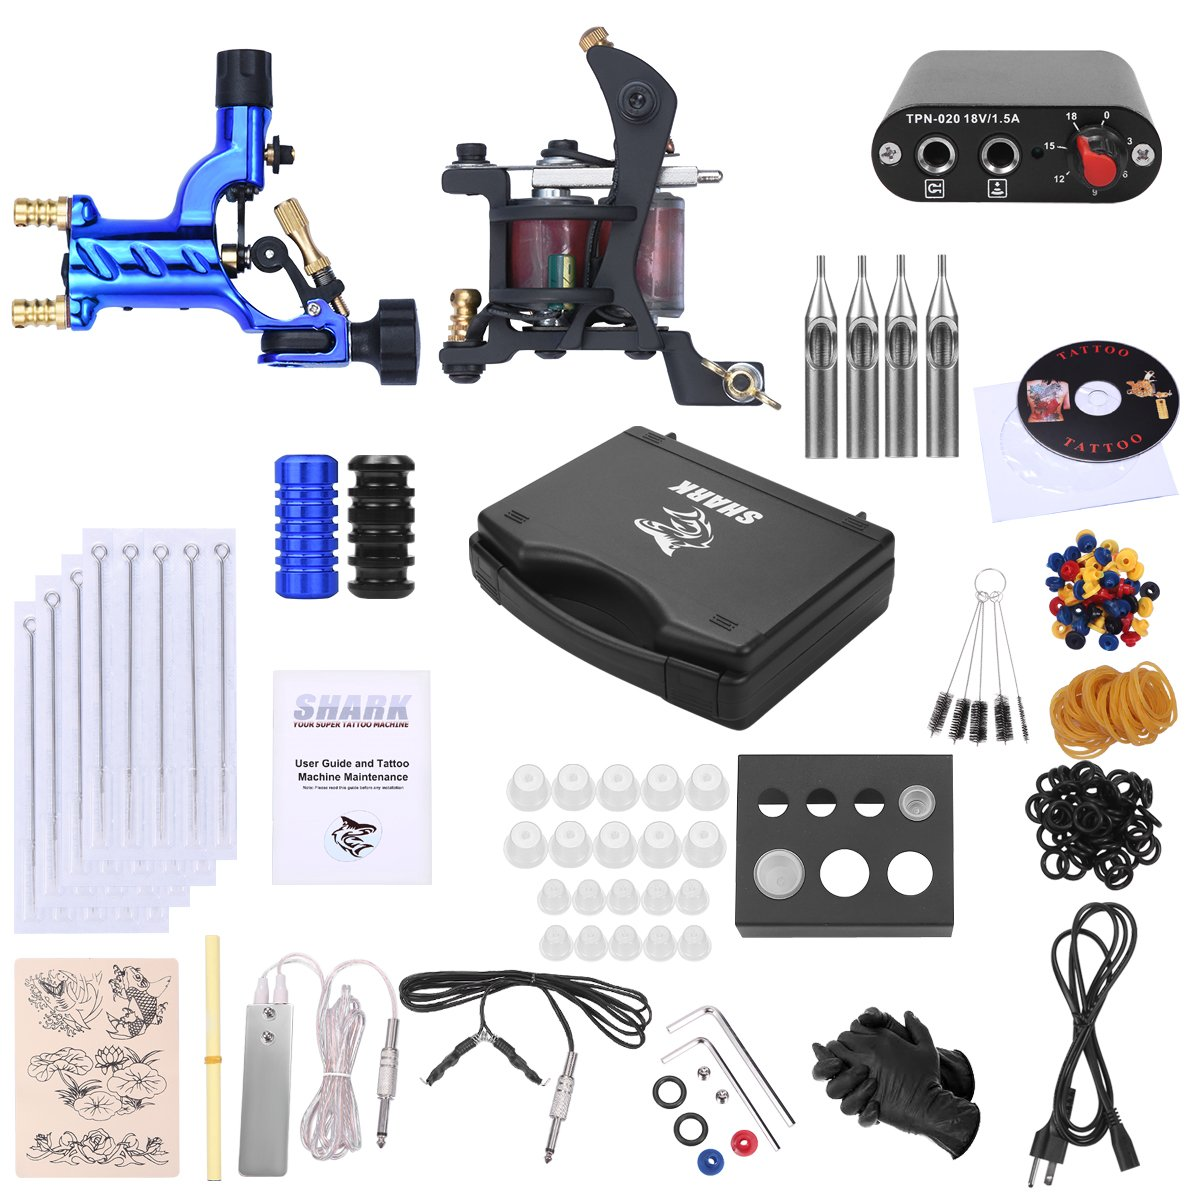 Shark Complete Pro Rotary Tattoo Kit Machines Gun With Machine Diagram Also As Well Plastic Carry Case Power Supply Needles Grips Tips Health Personal Care